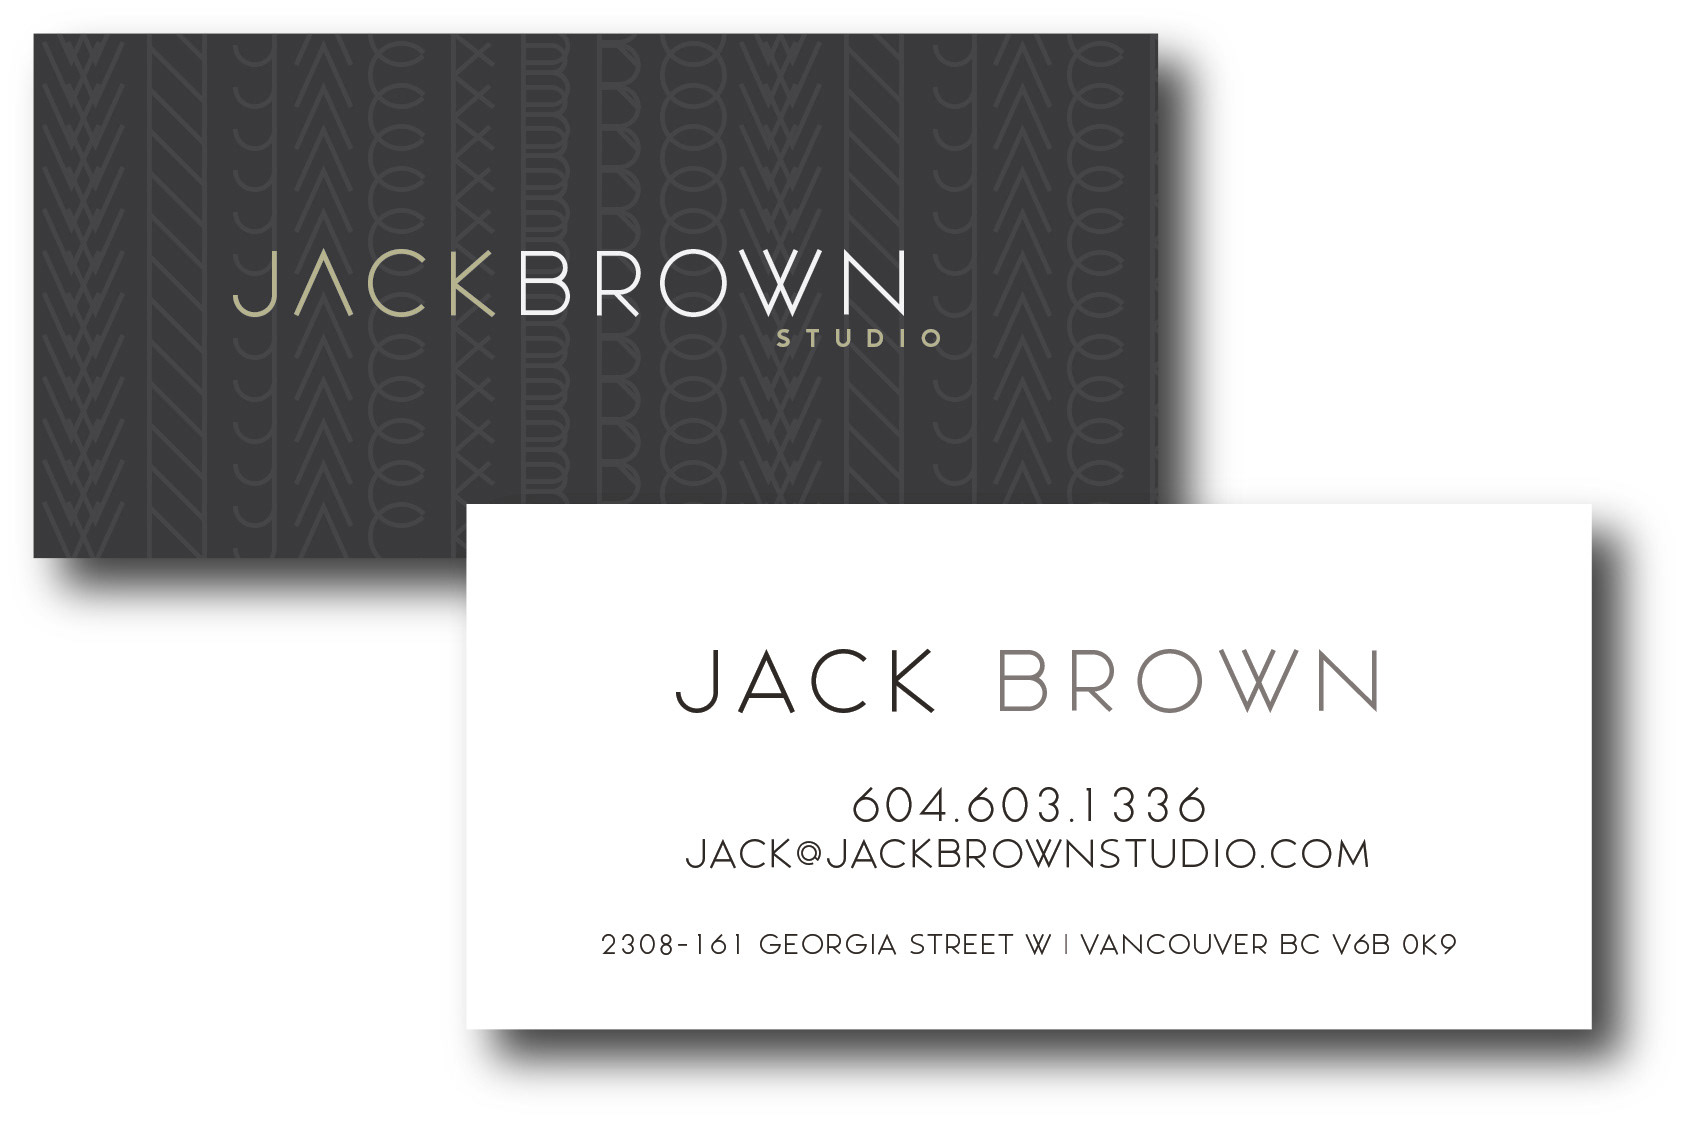 High end business cards vancouver choice image card design and high end business cards vancouver images card design and card template torque design jack brown studio reheart Choice Image